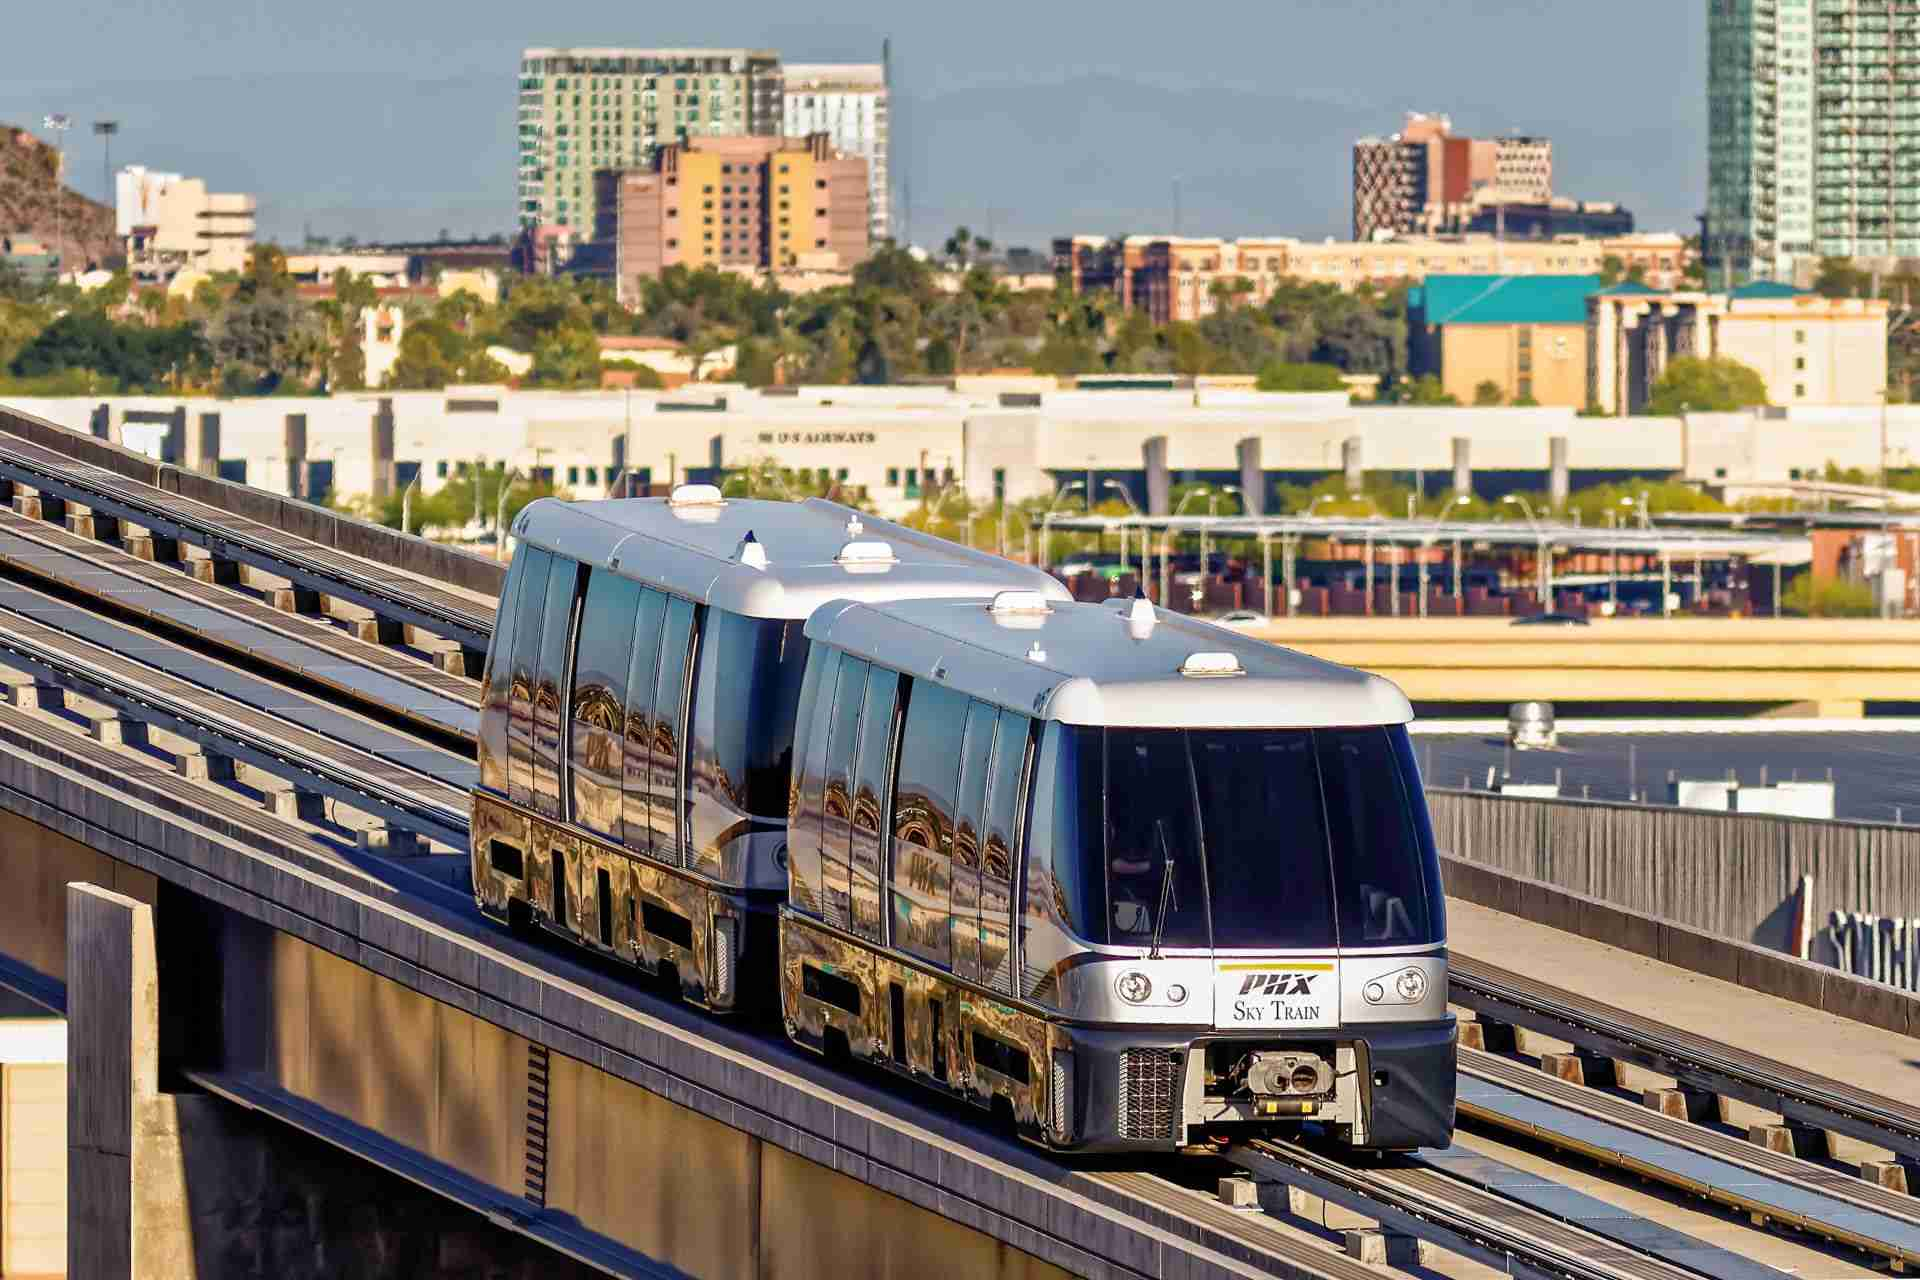 Phoenix Sky Train Automated People Mover APM